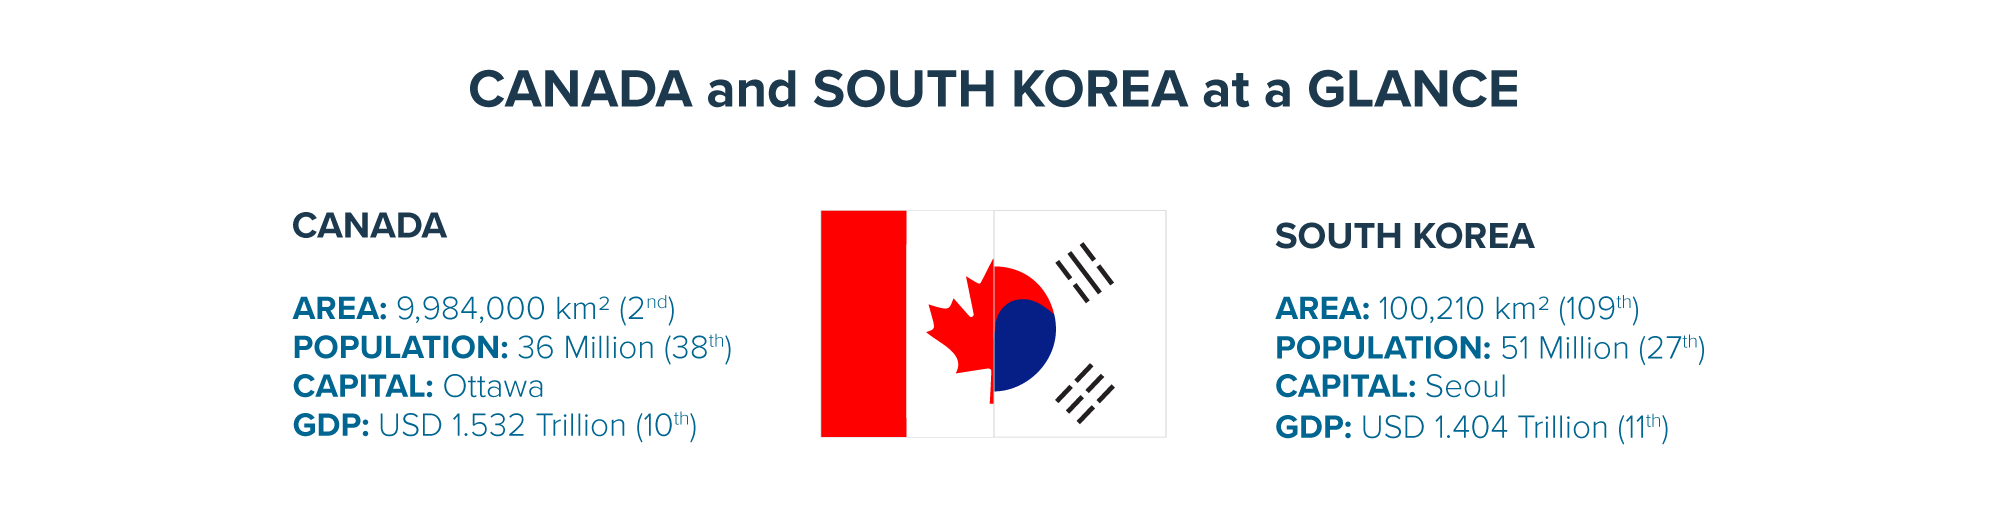 Canada-Korea Free Trade Agreement (CKFTA) promotes trade relationships between Canada and Korea | Vancouver Economic Commission